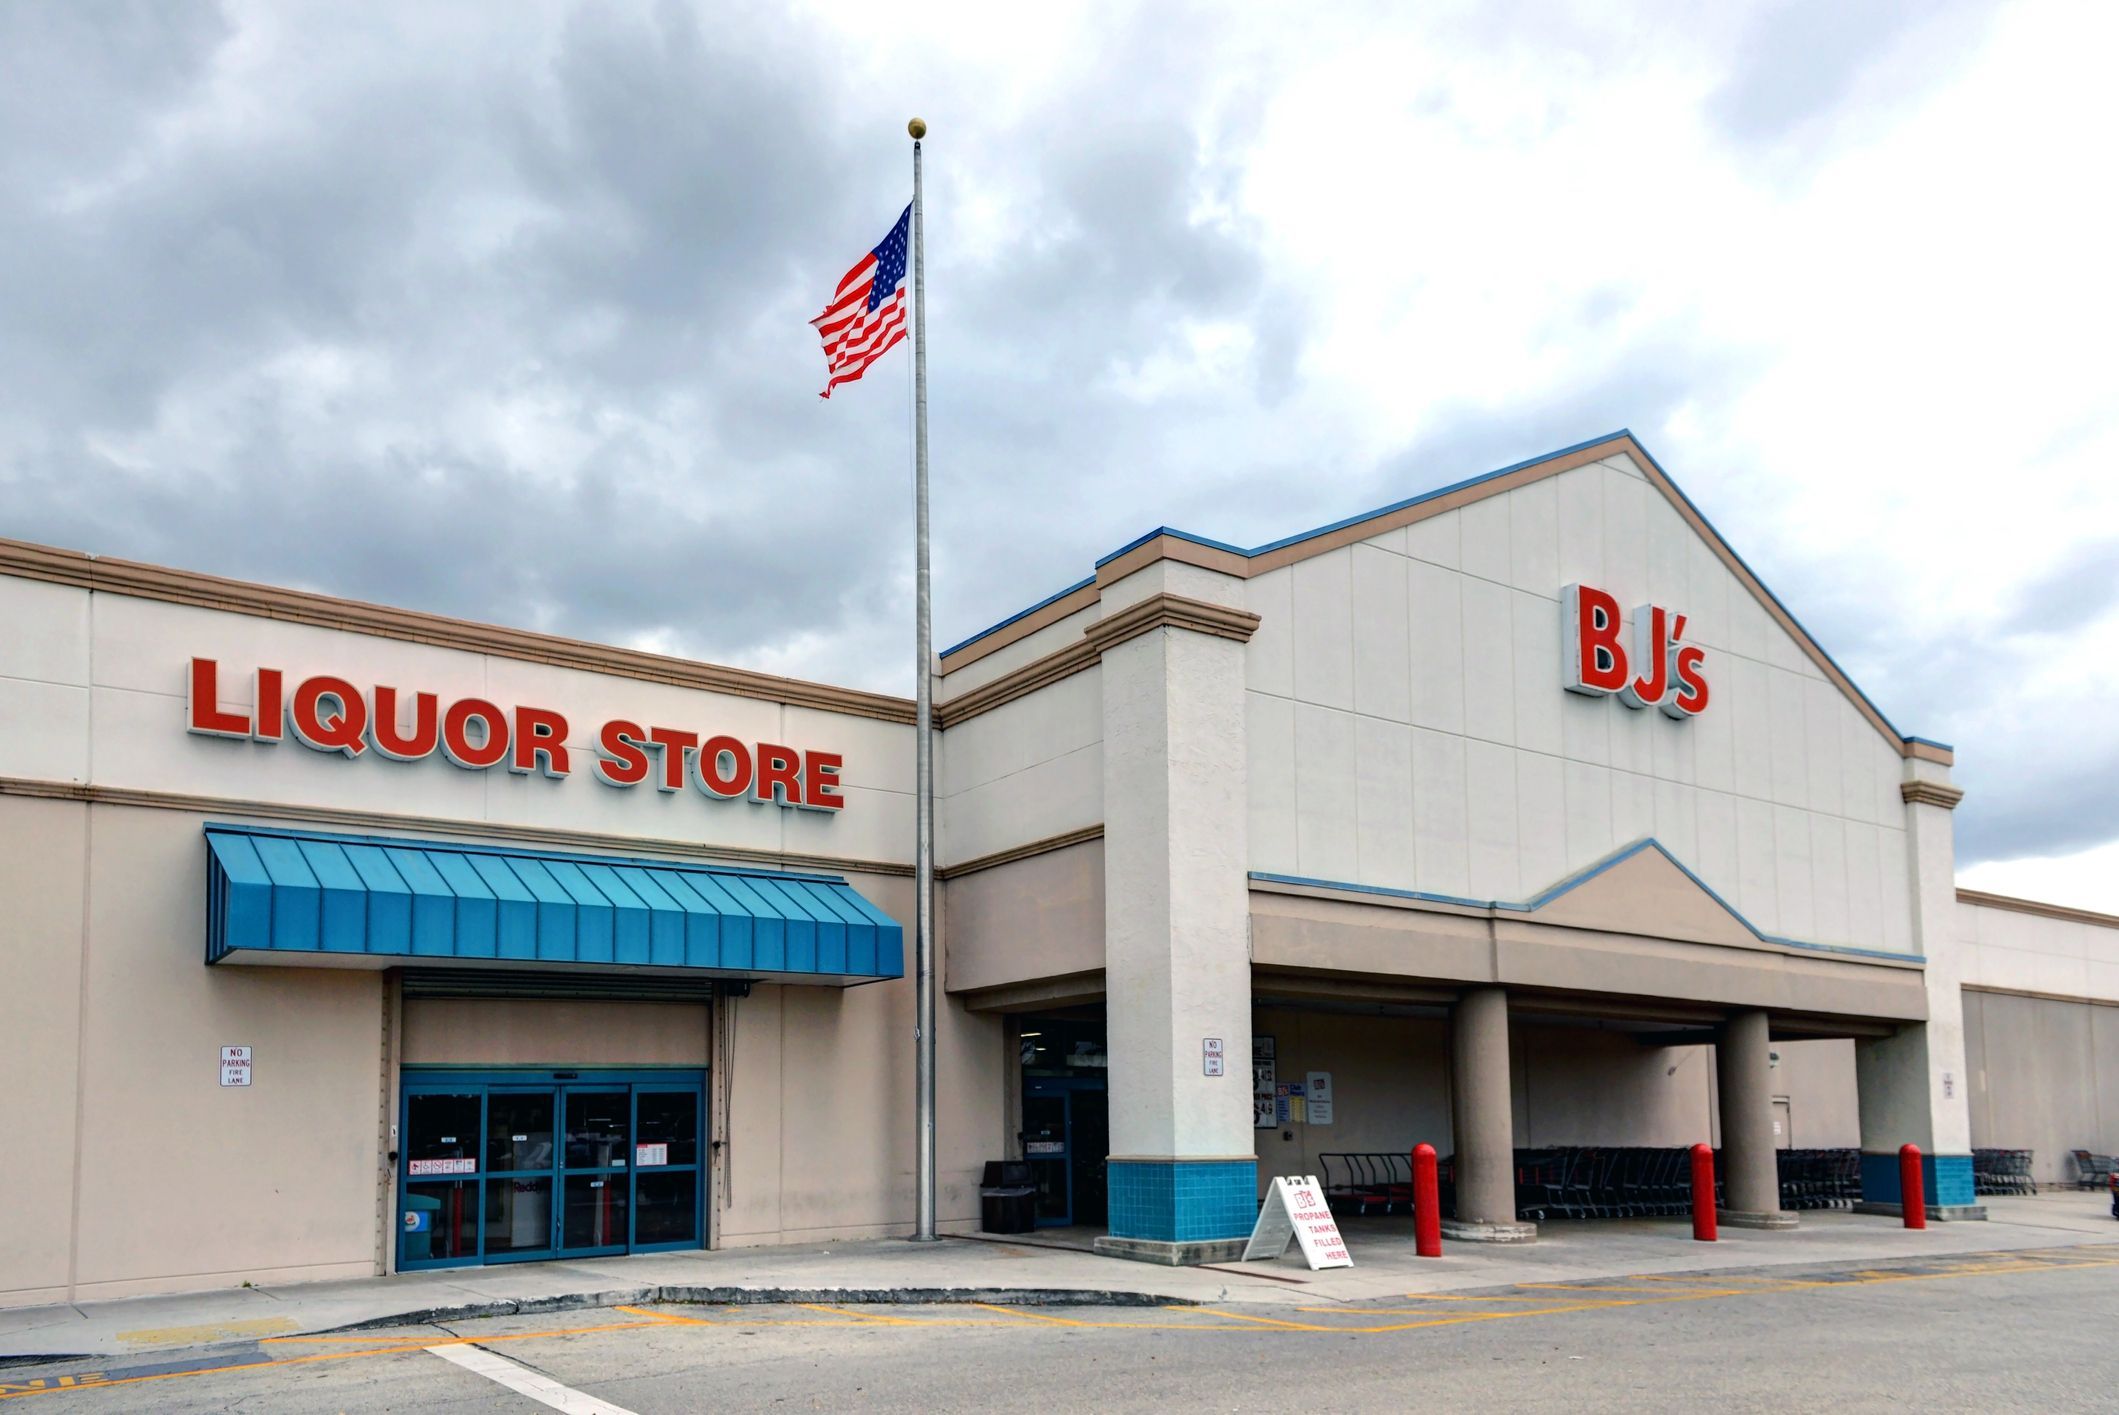 BJ's Is Offering Same-Day Delivery For Beer, Wine, And Spirits Just In Time For The Holidays